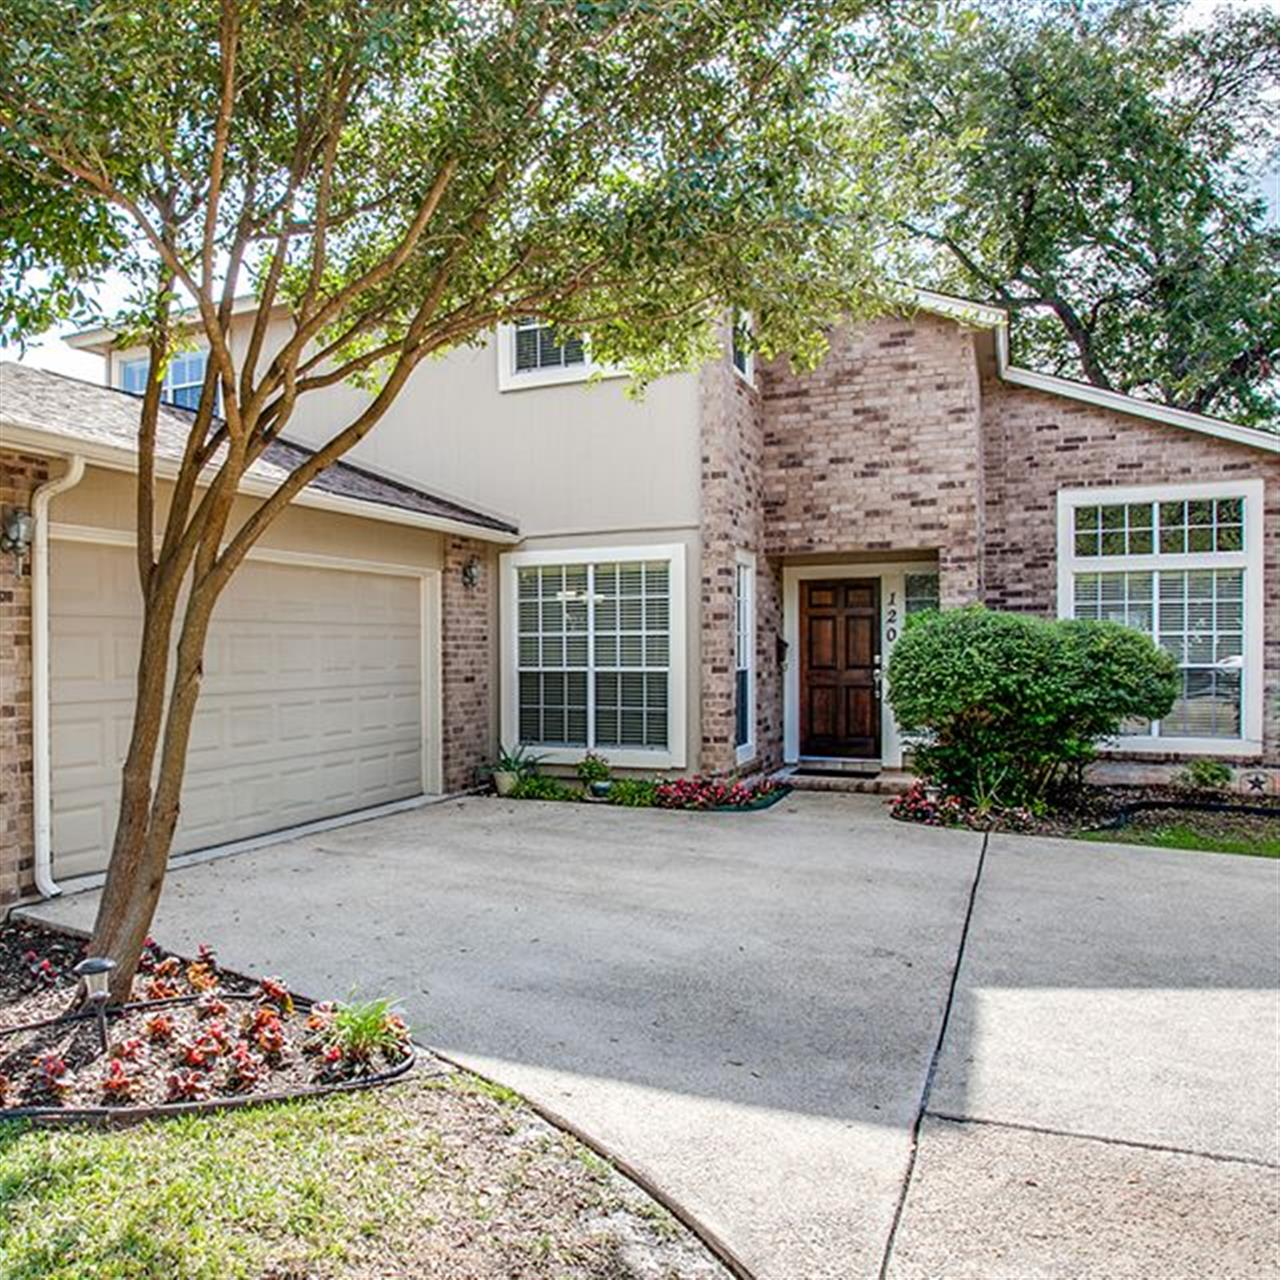 Luxury of the Day: 120 W. Edgewood Pl. listed by @melaniew.therealtor. Located in desirable #AlamoHeights, this wonderfully updated 2-story home offers a relaxed environment for day-to-day living, holiday celebrations and everything in between.